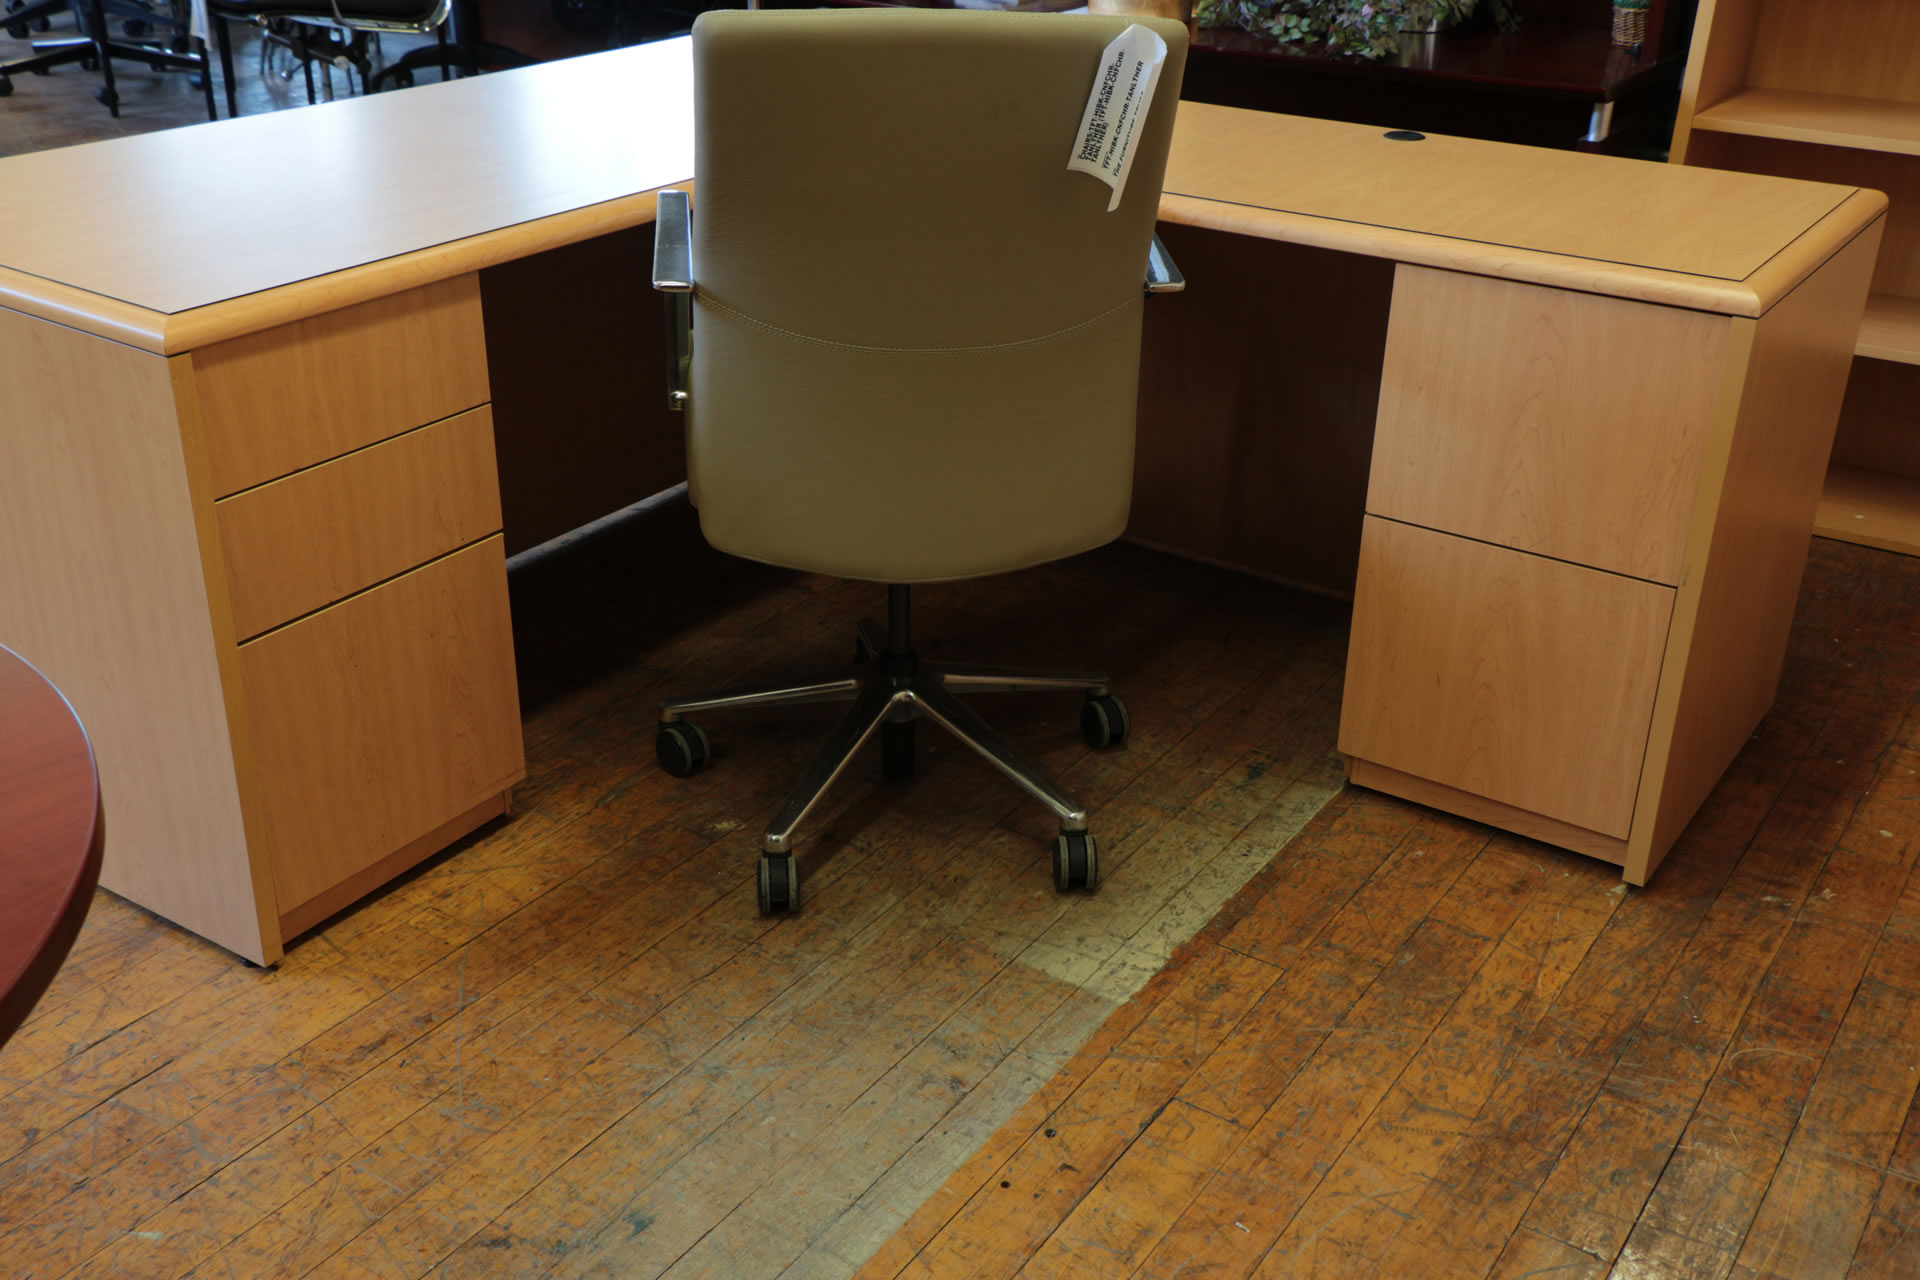 peartreeofficefurniture_peartreeofficefurniture_peartreeofficefurniture_2015-06-25_14-36-24.jpg